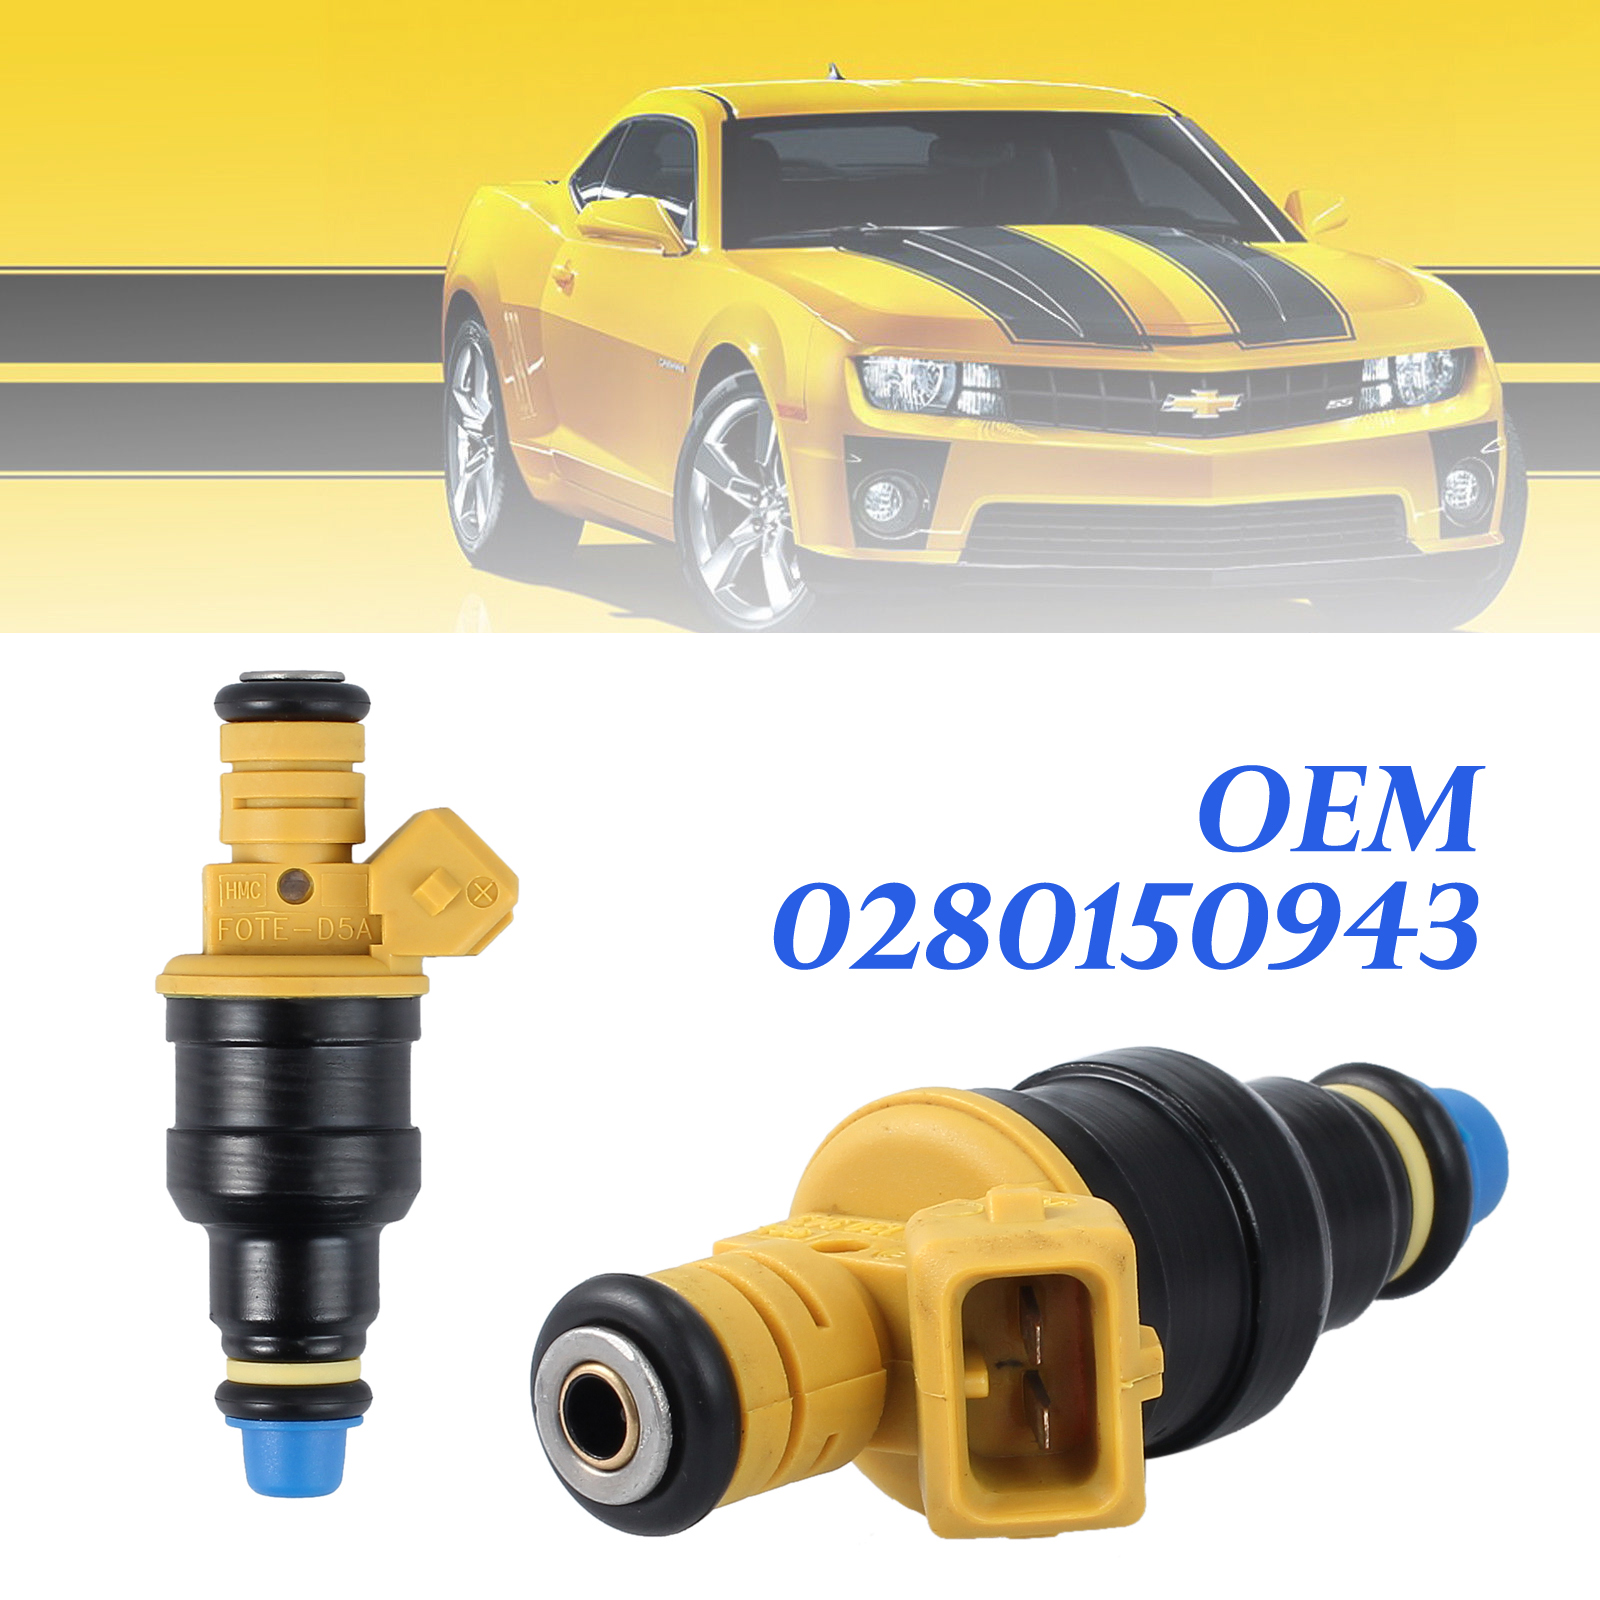 8 Flow Matched Fuel Injectors For Ford F150 F250 F350 4.6 5.0 5.4 5.8 0280150718